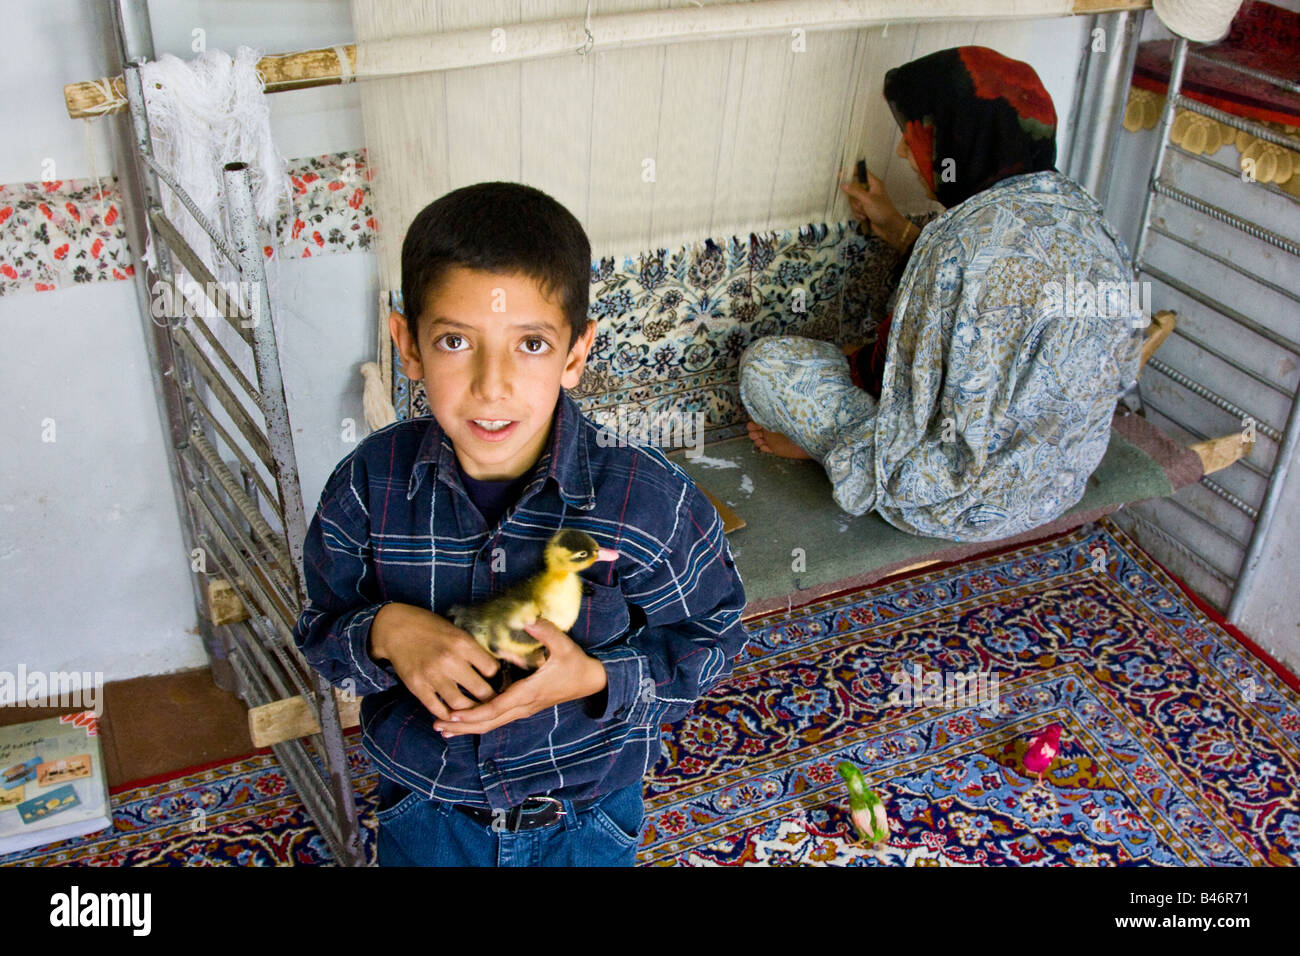 Rug Weaving Iran Stock Photos Amp Rug Weaving Iran Stock